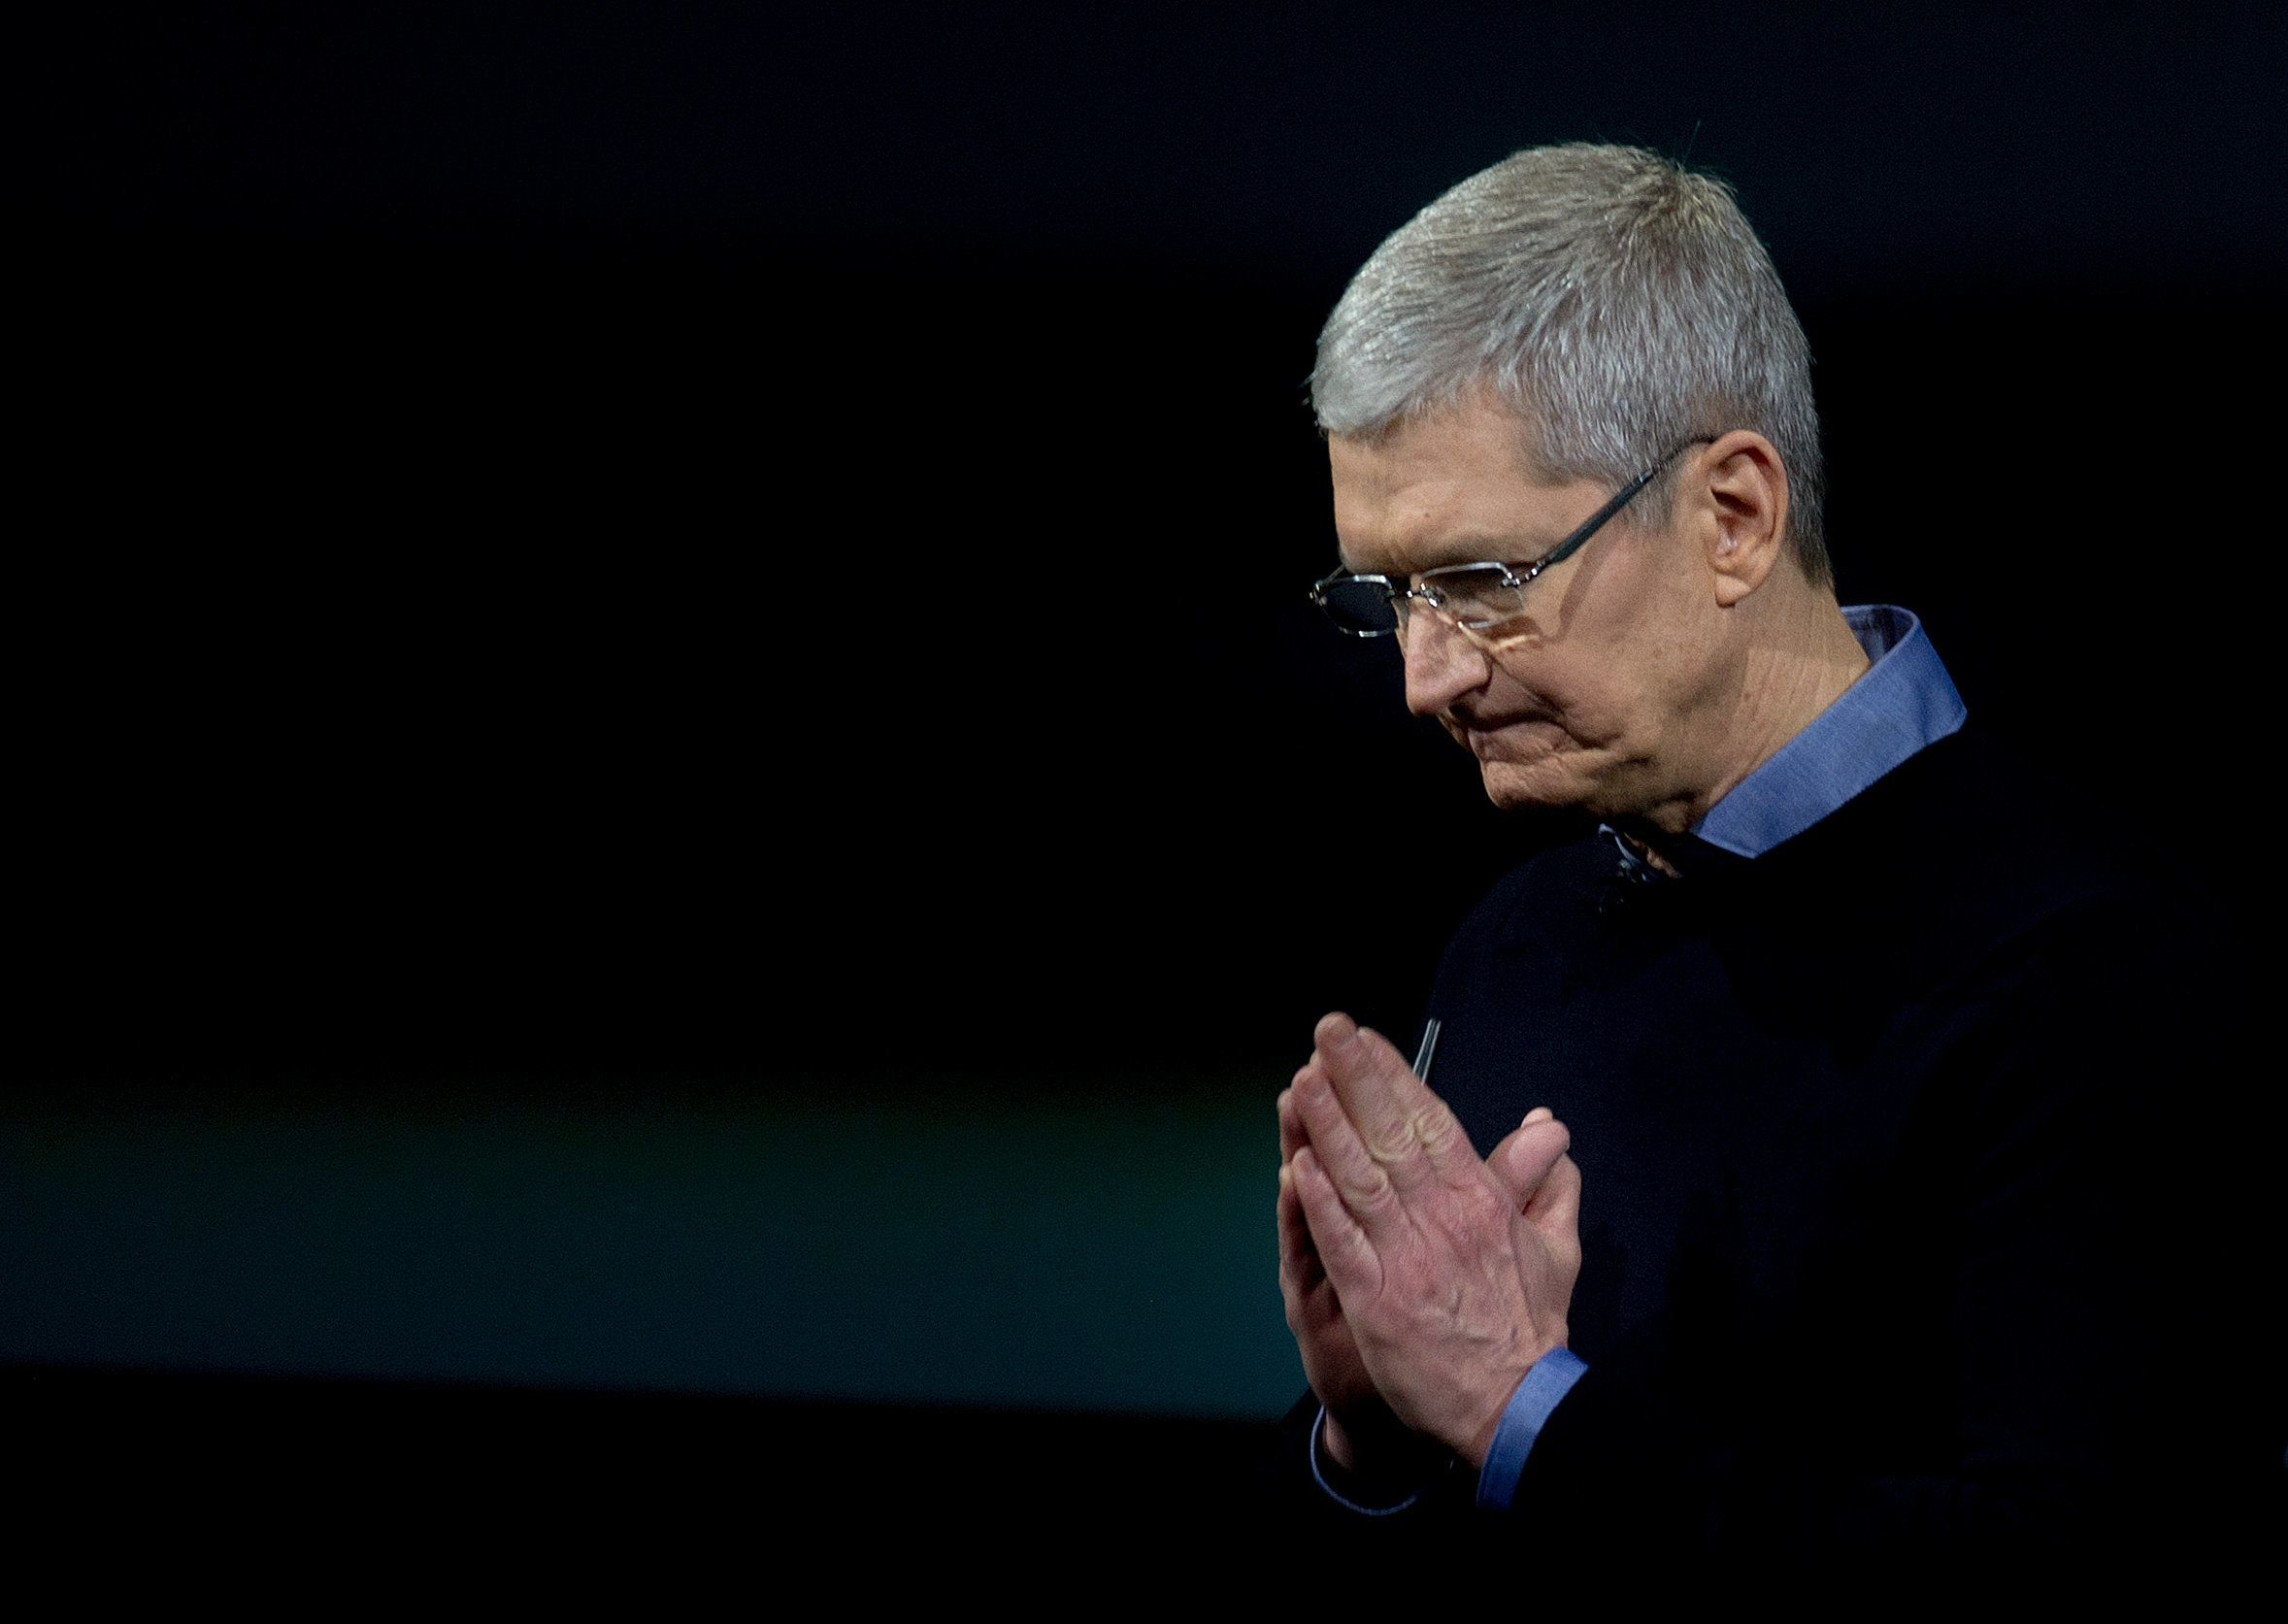 Apple CEO Tim Cook gestures during a media event at Apple headquarters in Cupertino, California on March 21, 2016. Apple on Monday unveiled a new iPhone with a four-inch screen, aiming to reach consumers looking for a handset that is more affordable and compact than its flagship models. / AFP / Josh Edelson        (Photo credit should read JOSH EDELSON/AFP/Getty Images)